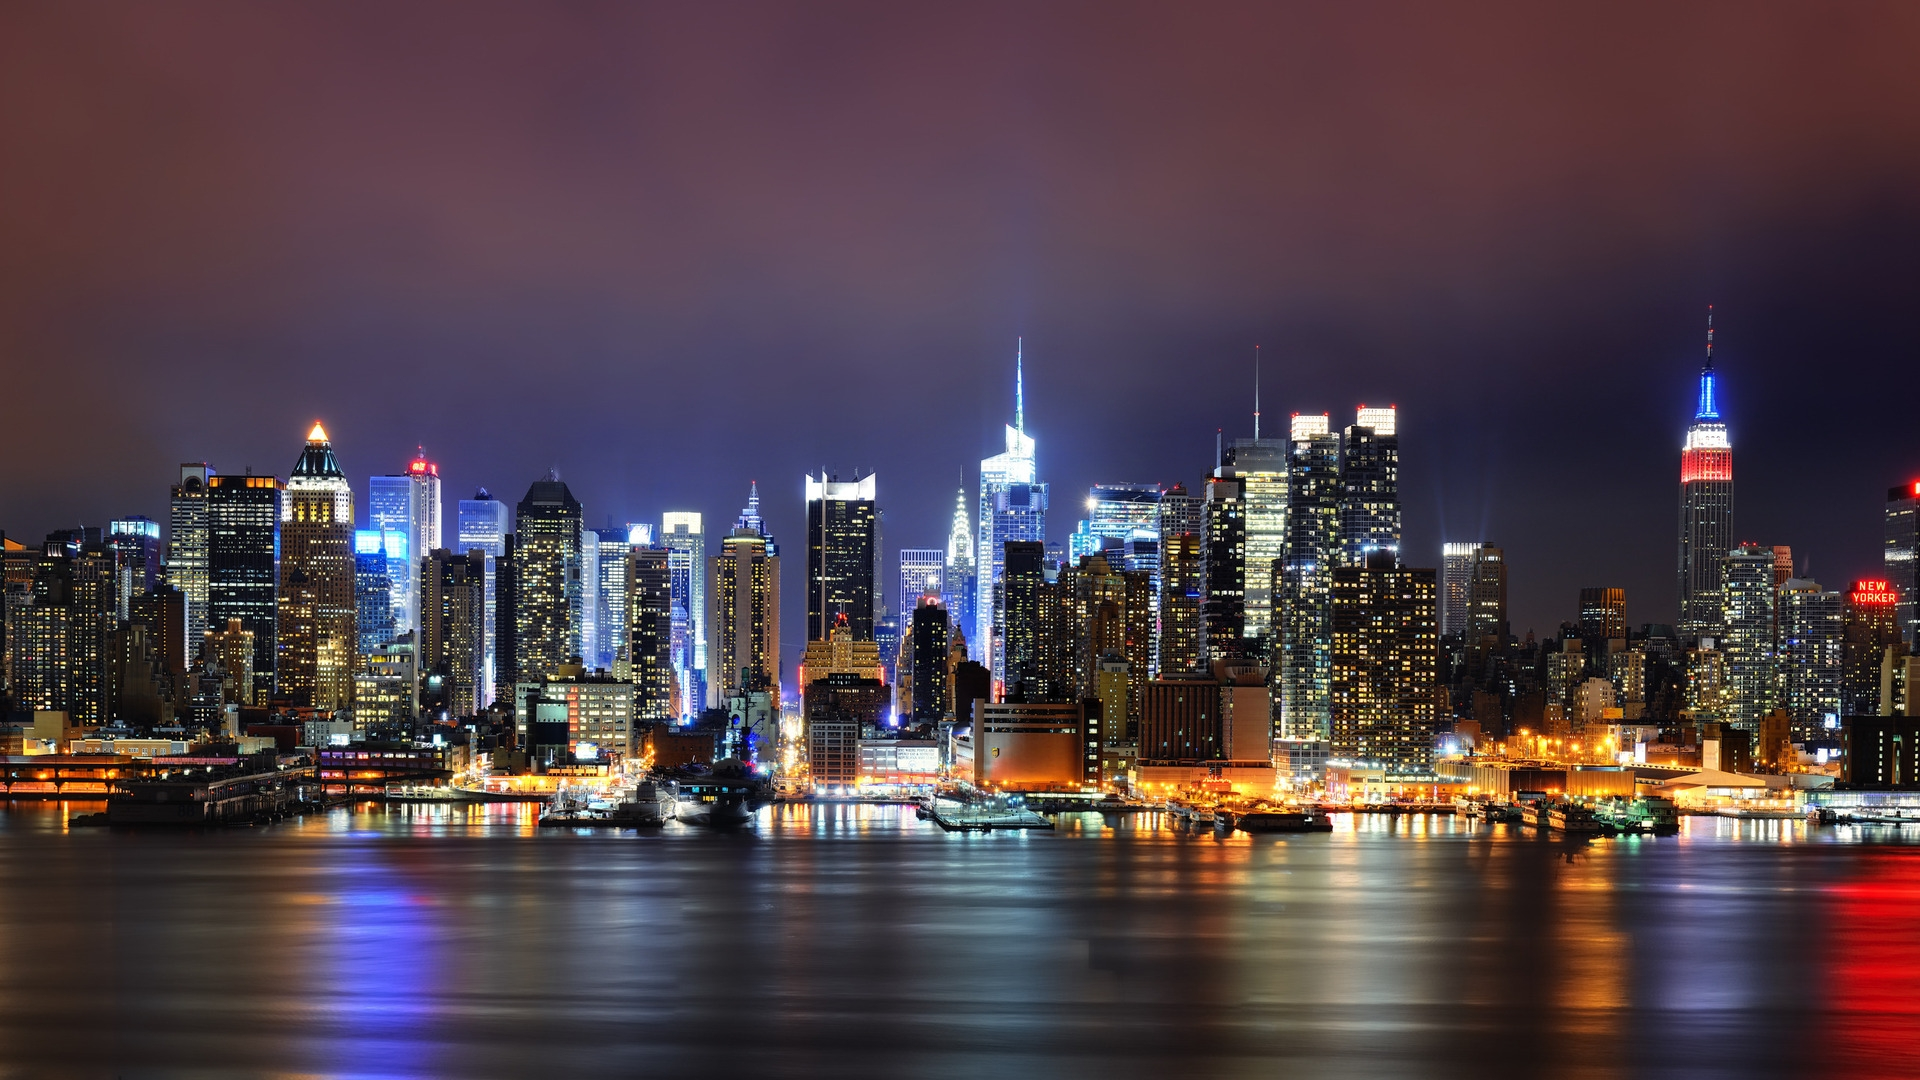 New York City Wallpaper 18010 1920x1080 px HDWallSourcecom 1920x1080